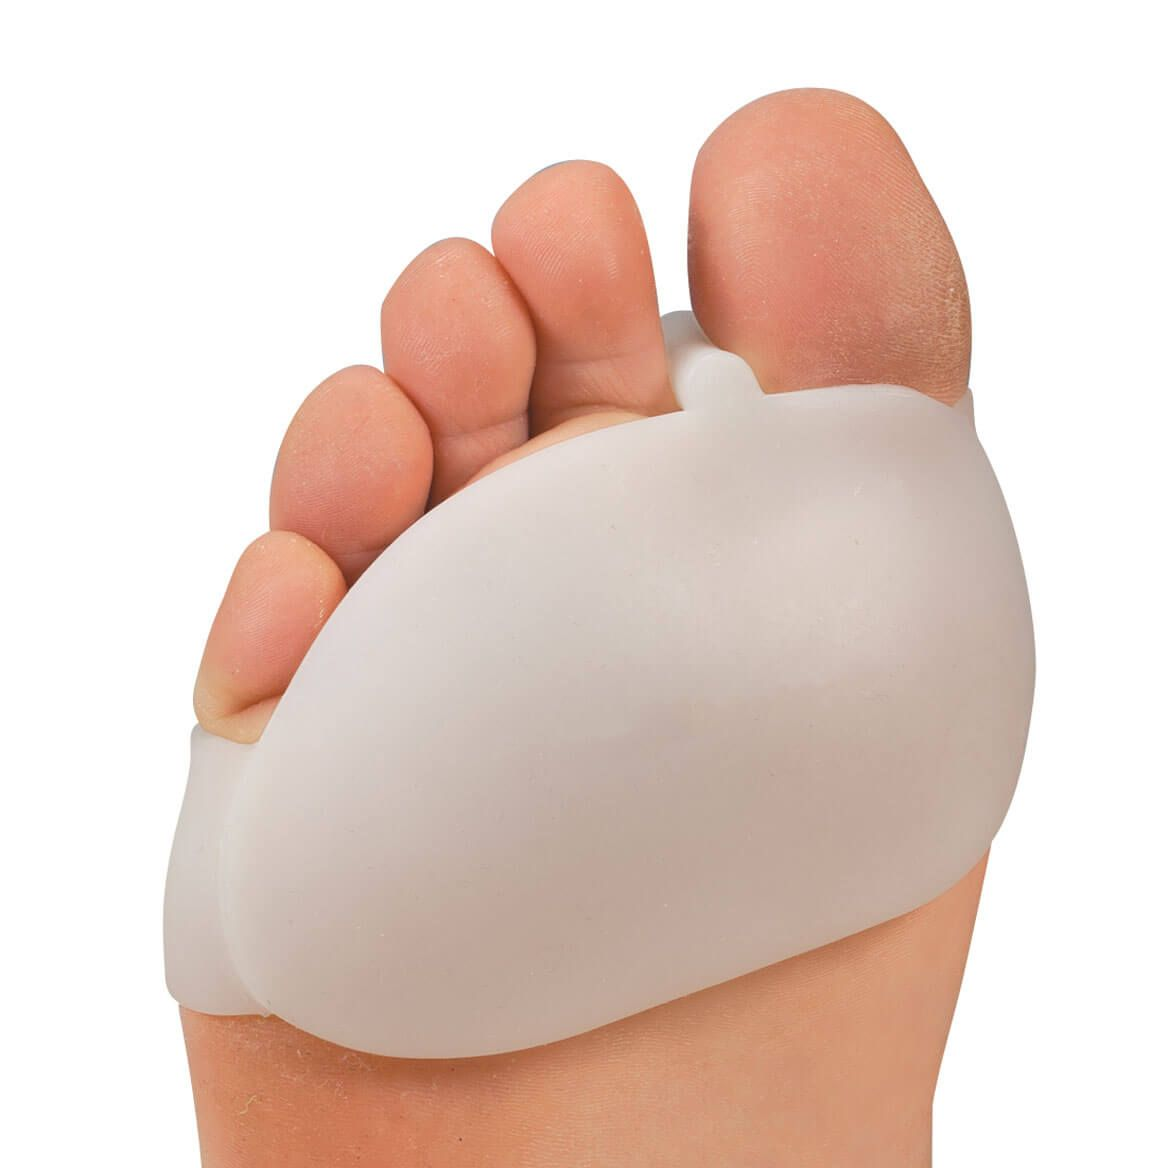 Silver Steps™ Silicone Ball of Foot Pad with Toe Separator - 1 Pair-360241